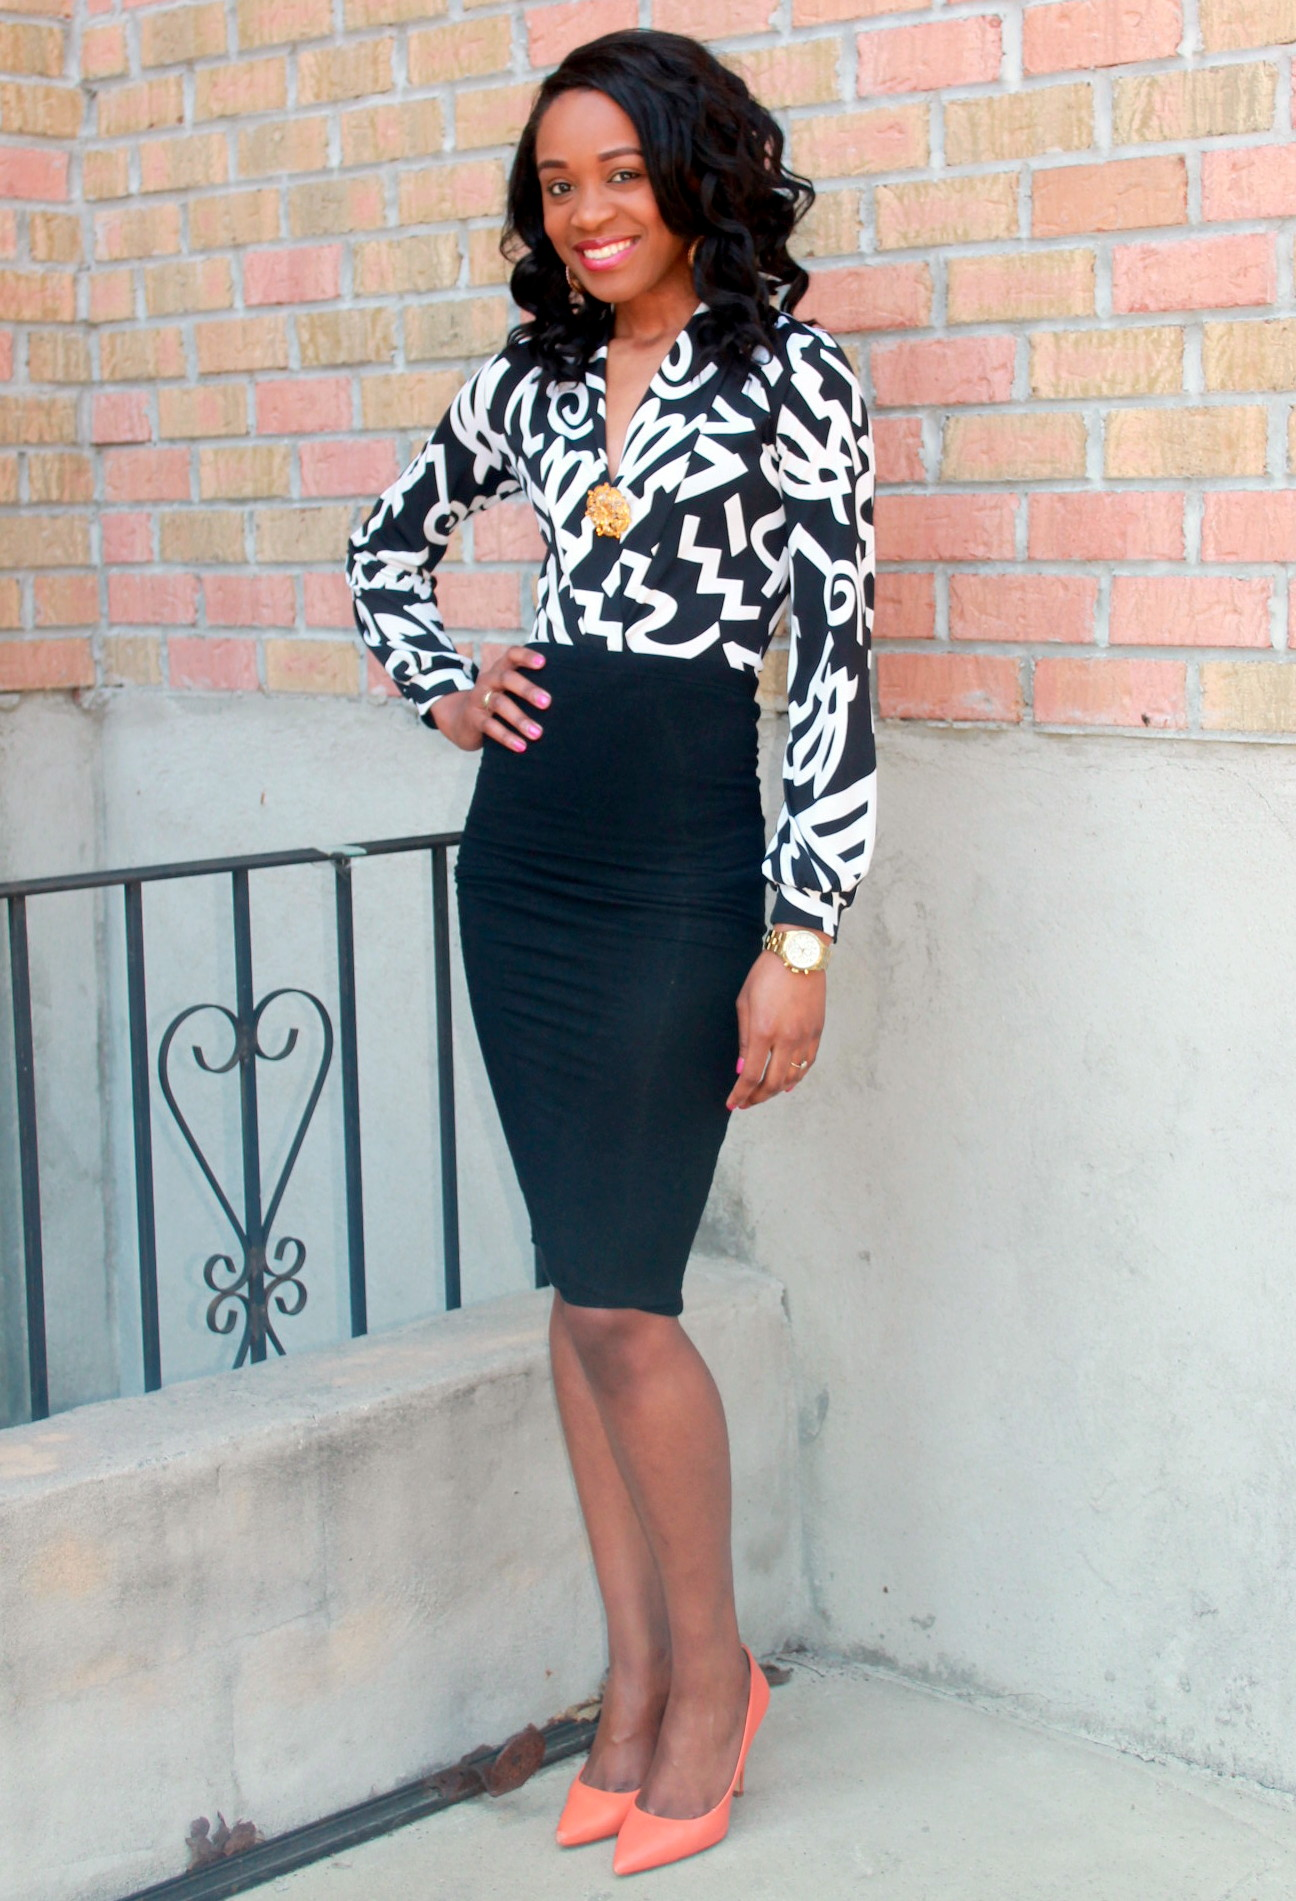 Black and white + orange pumps (1)